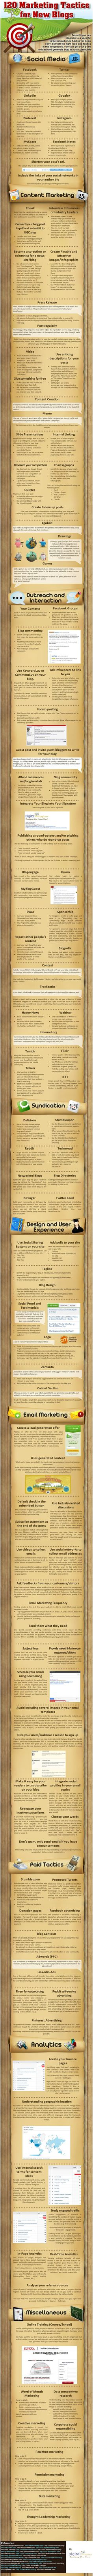 120 Marketing Tactics for New Blogs infographic 120 Marketing Tactics for Blogs